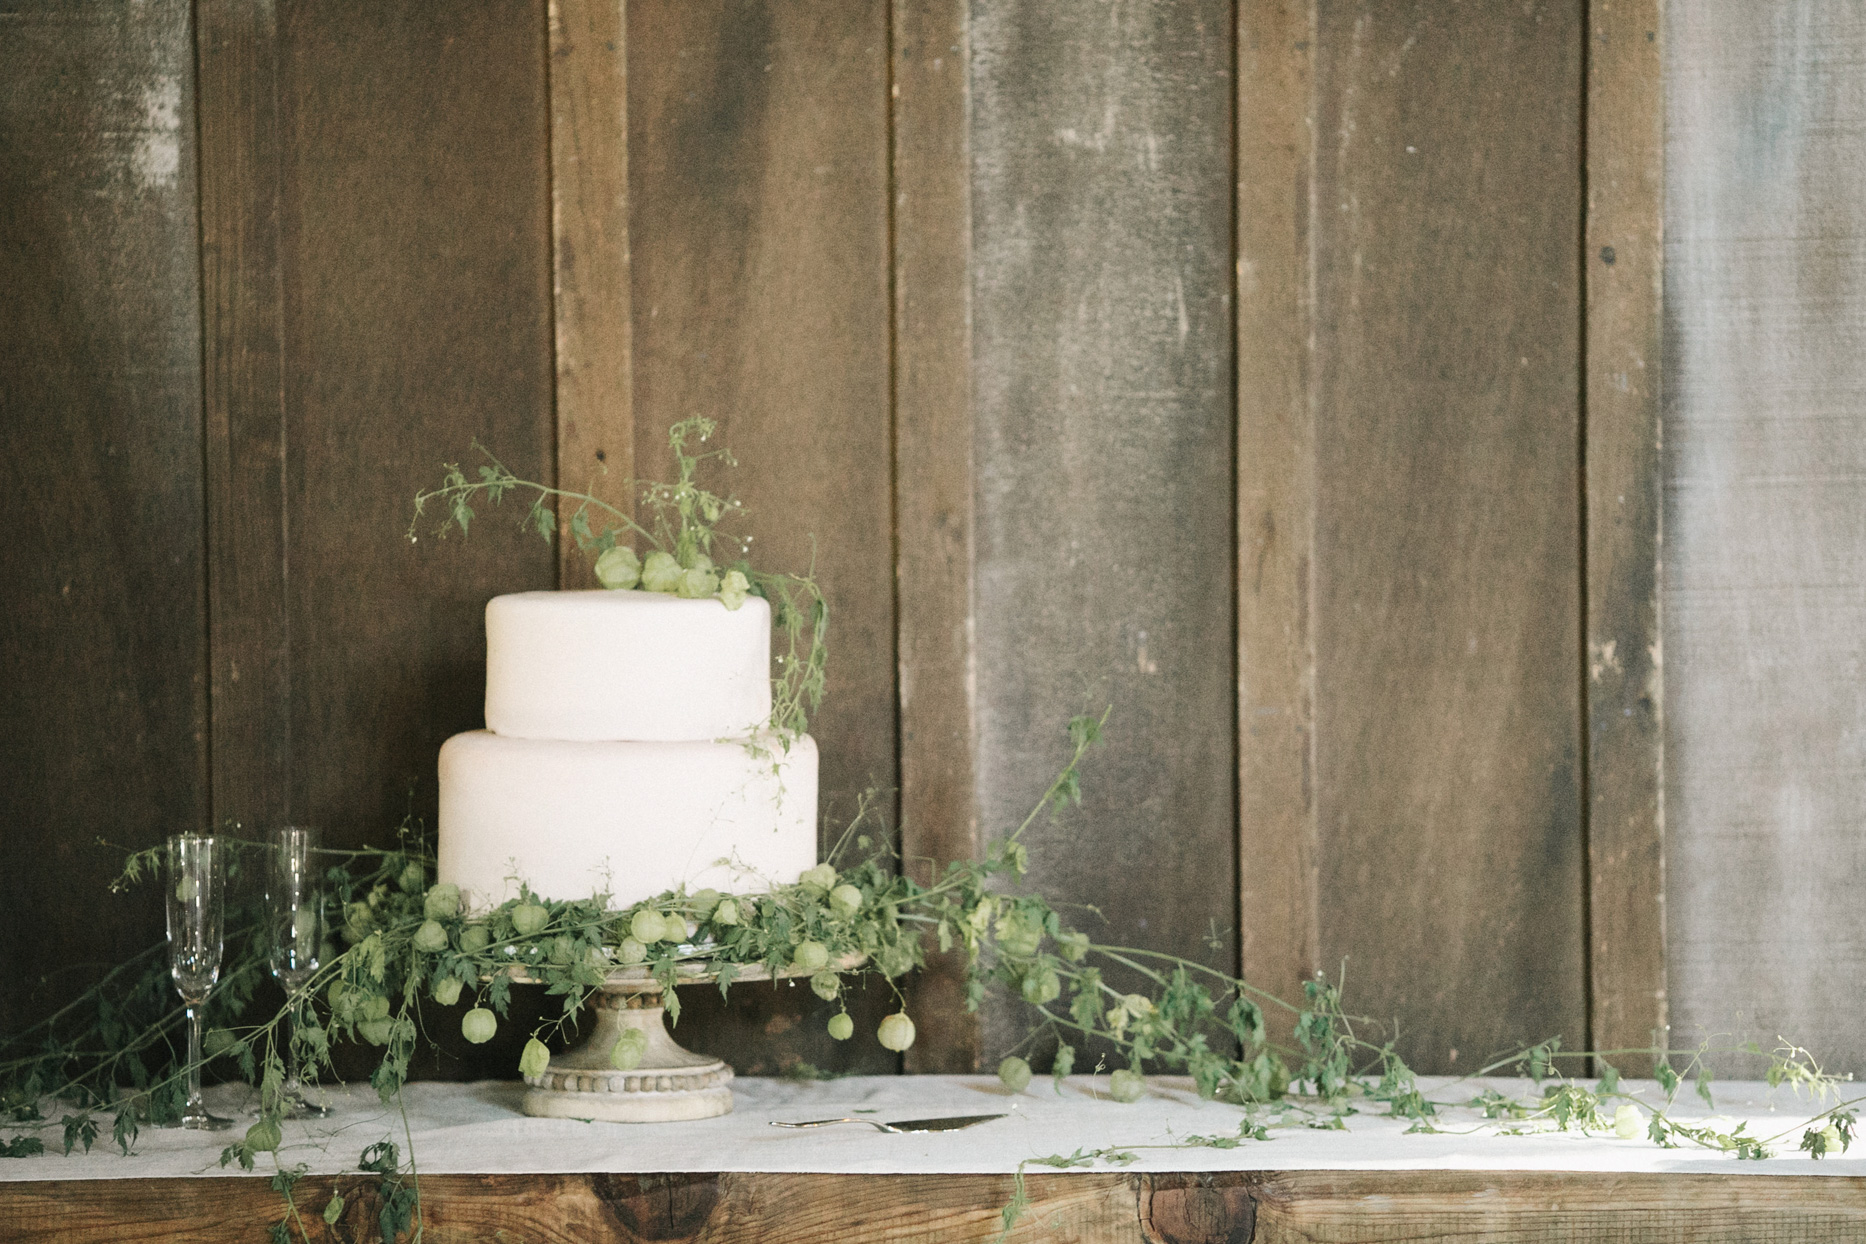 two-tier wedding cake at table against barn wall